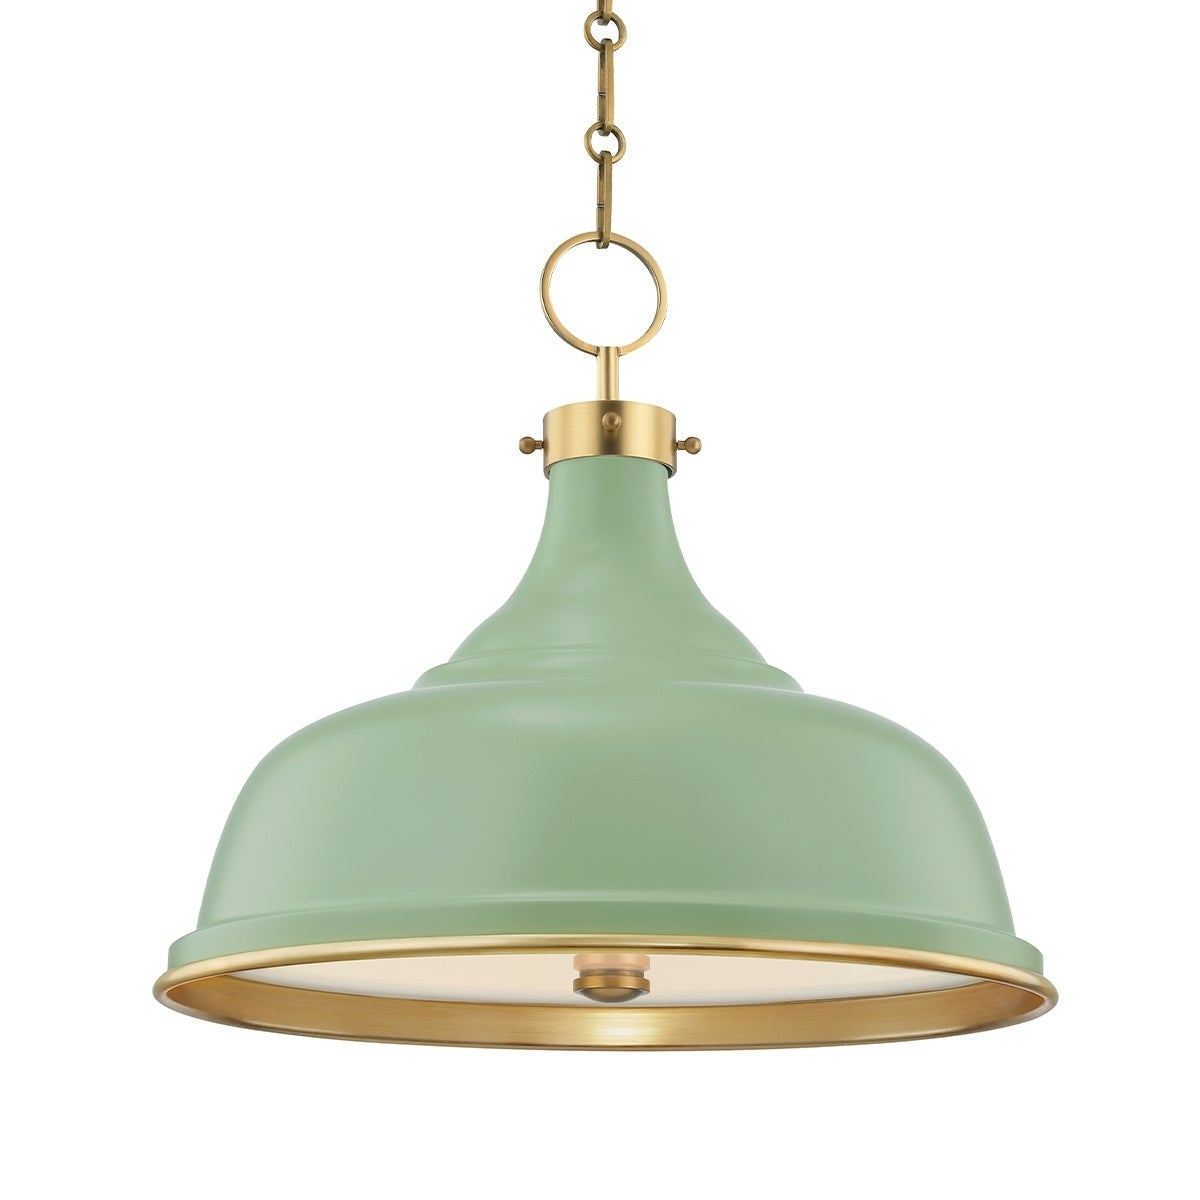 Hudson Valley Painted No 1 By Mark D Sikes 3 Light Aged Brass Pendant With Leaf Green Shade Overstock 31525194